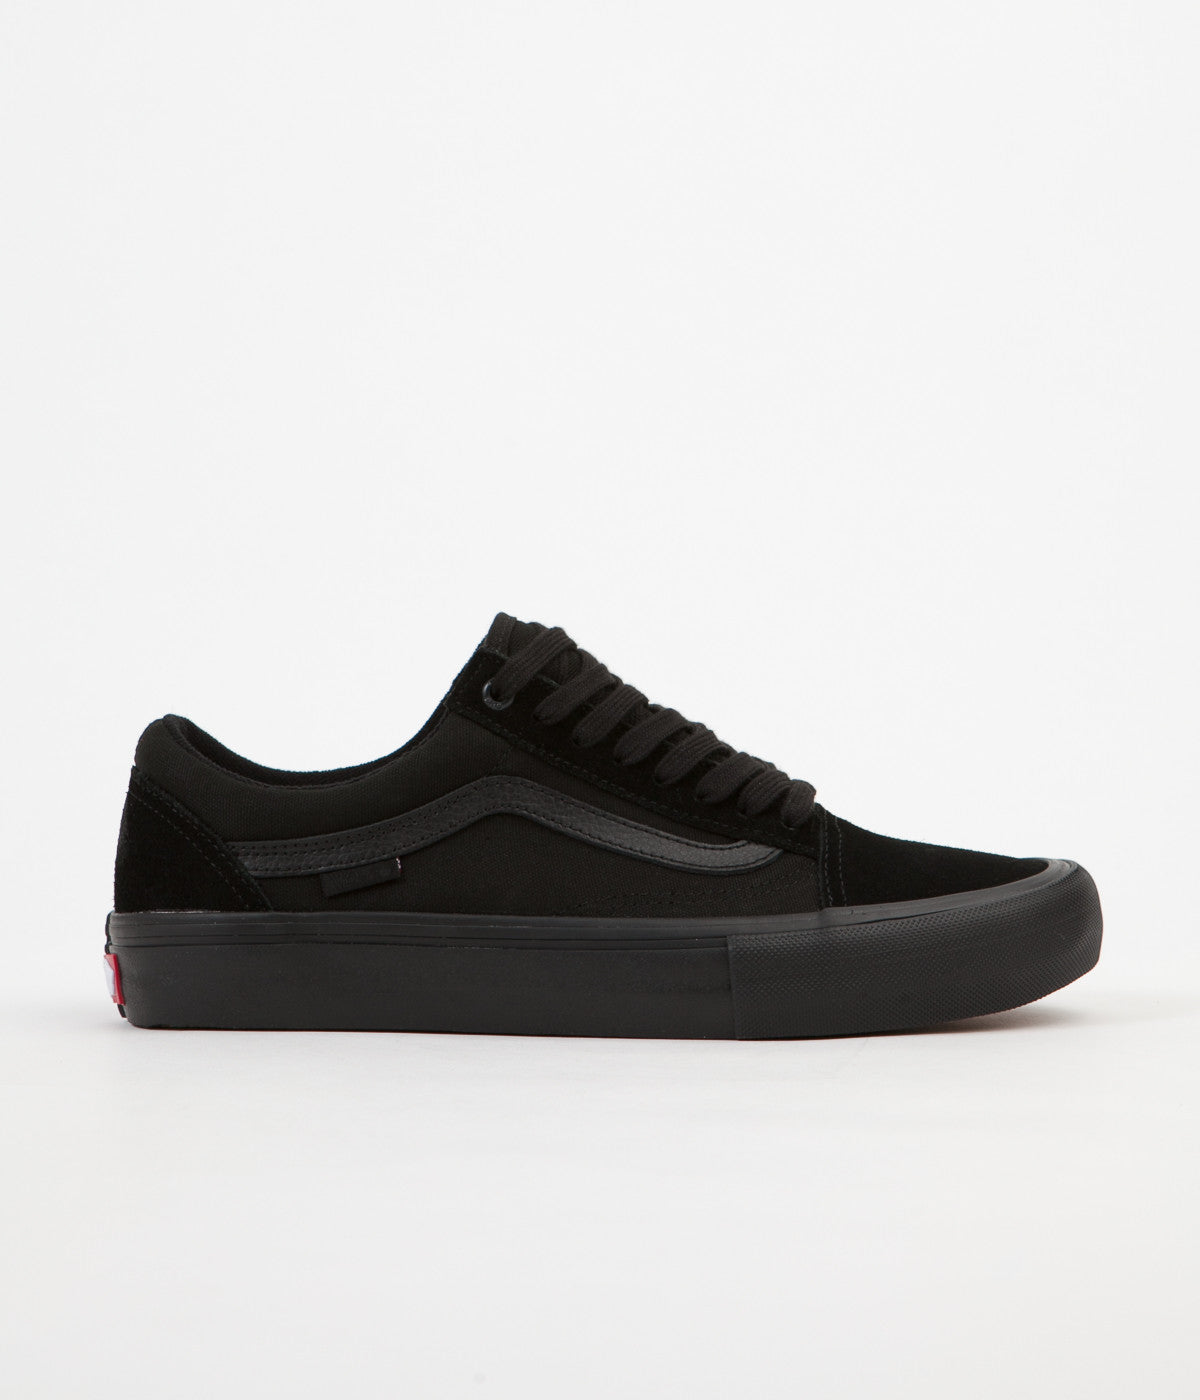 Pro Old BlackoutFlatspot Skool Shoes Vans YmIgvb7f6y